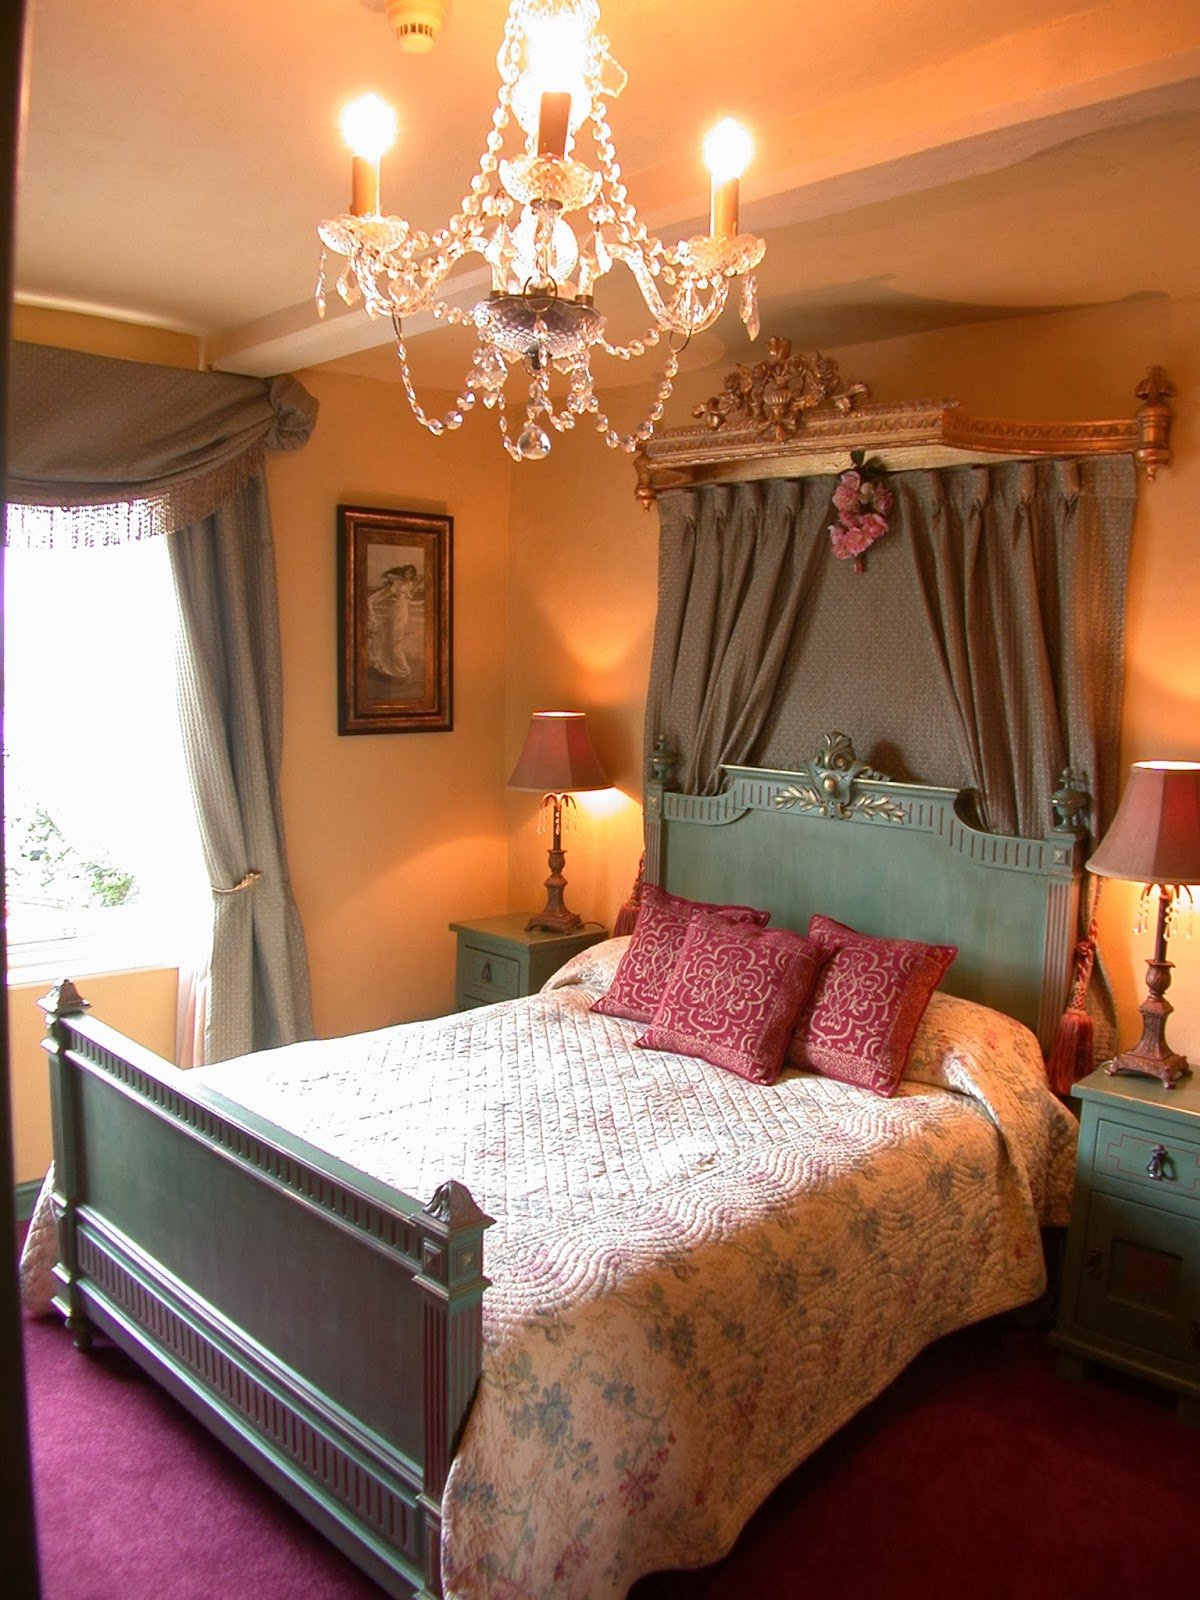 Best The Hoa Member Romantic Bedroom Décor On A Budget With Pictures